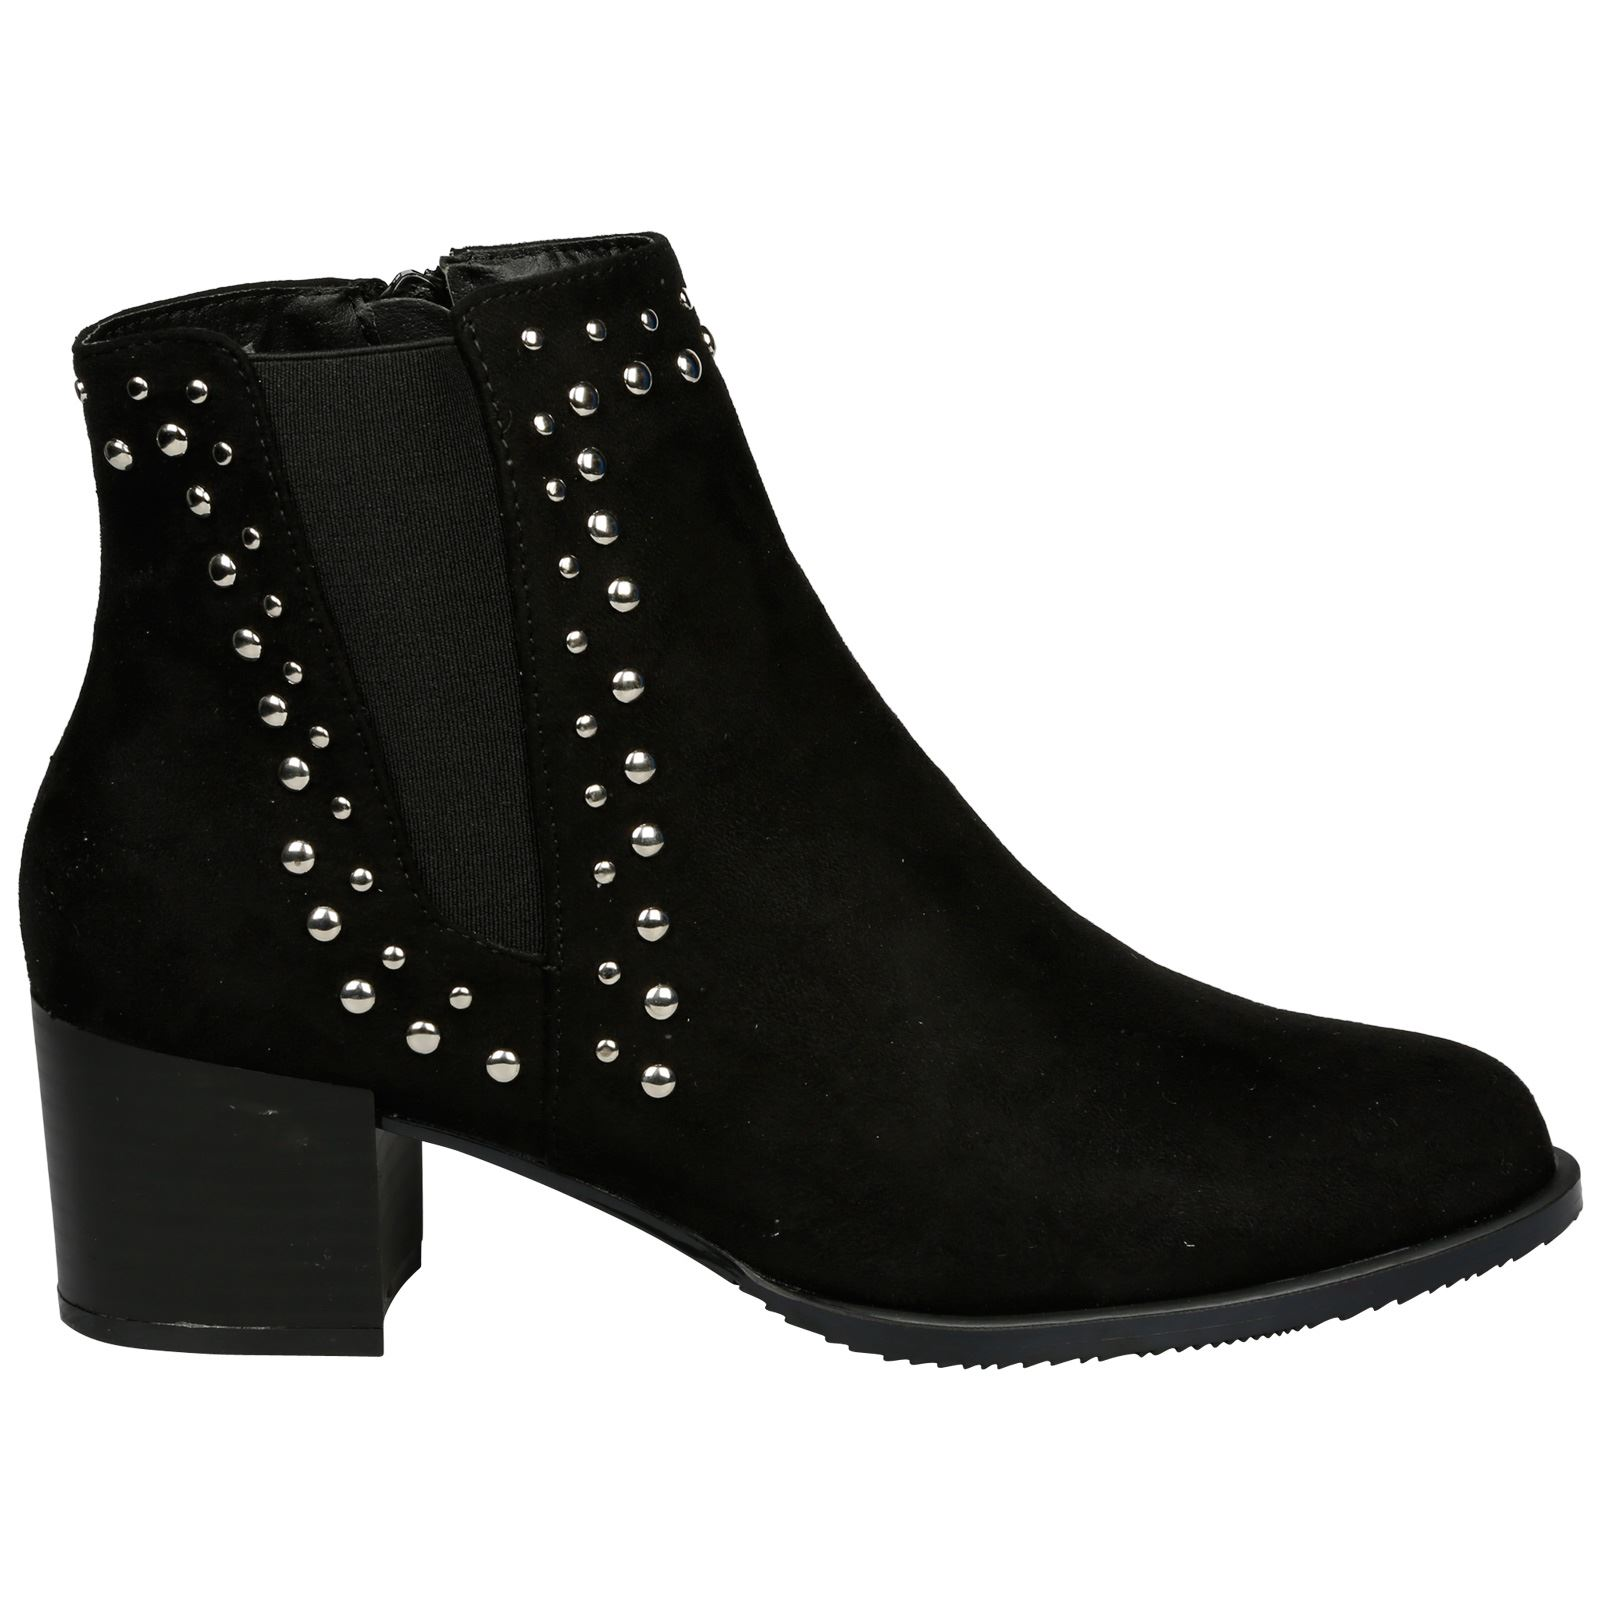 Luna-Womens-Low-Mid-Block-Heel-Studded-Chelsea-Zip-Up-Ankle-Boots-Casual-Ladies thumbnail 3